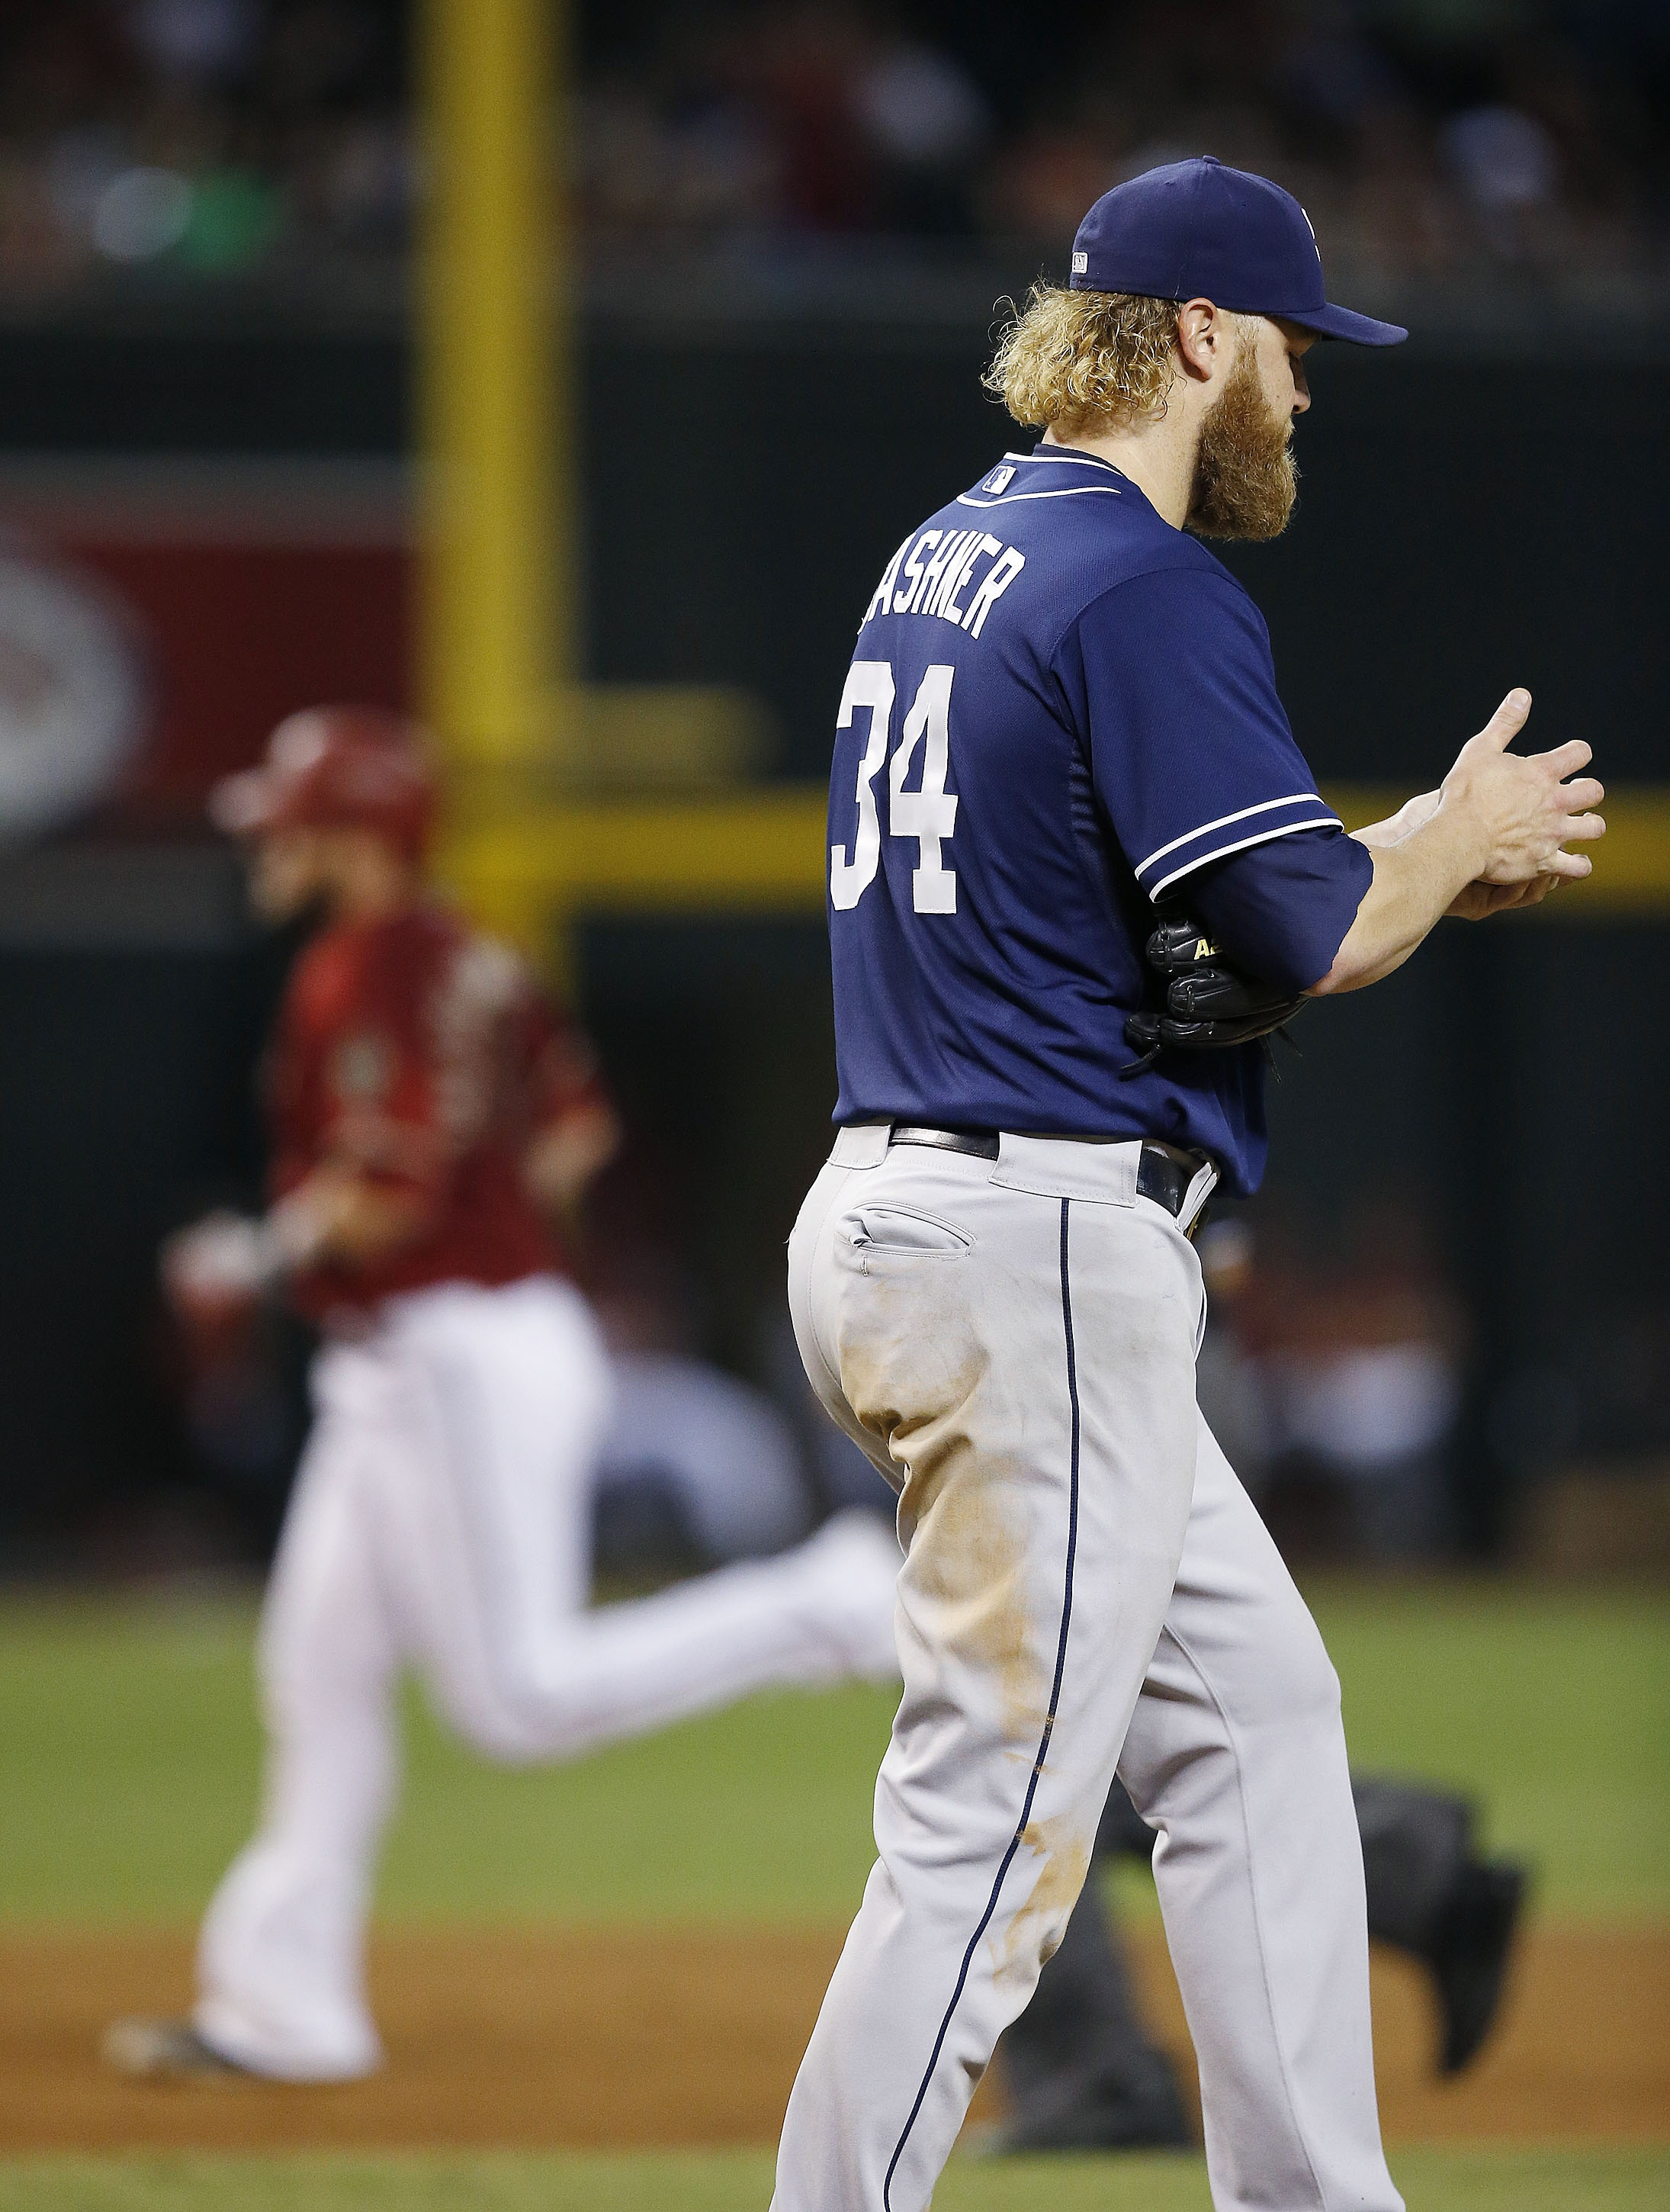 San Diego Padres' Andrew Cashner (34) rubs up a new baseball after giving up a home run to Arizona Diamondbacks' Jarrod Saltalamacchia, left, during the sixth inning of a baseball game Wednesday, Sept. 16, 2015, in Phoenix. (AP Photo/Ross D. Franklin)